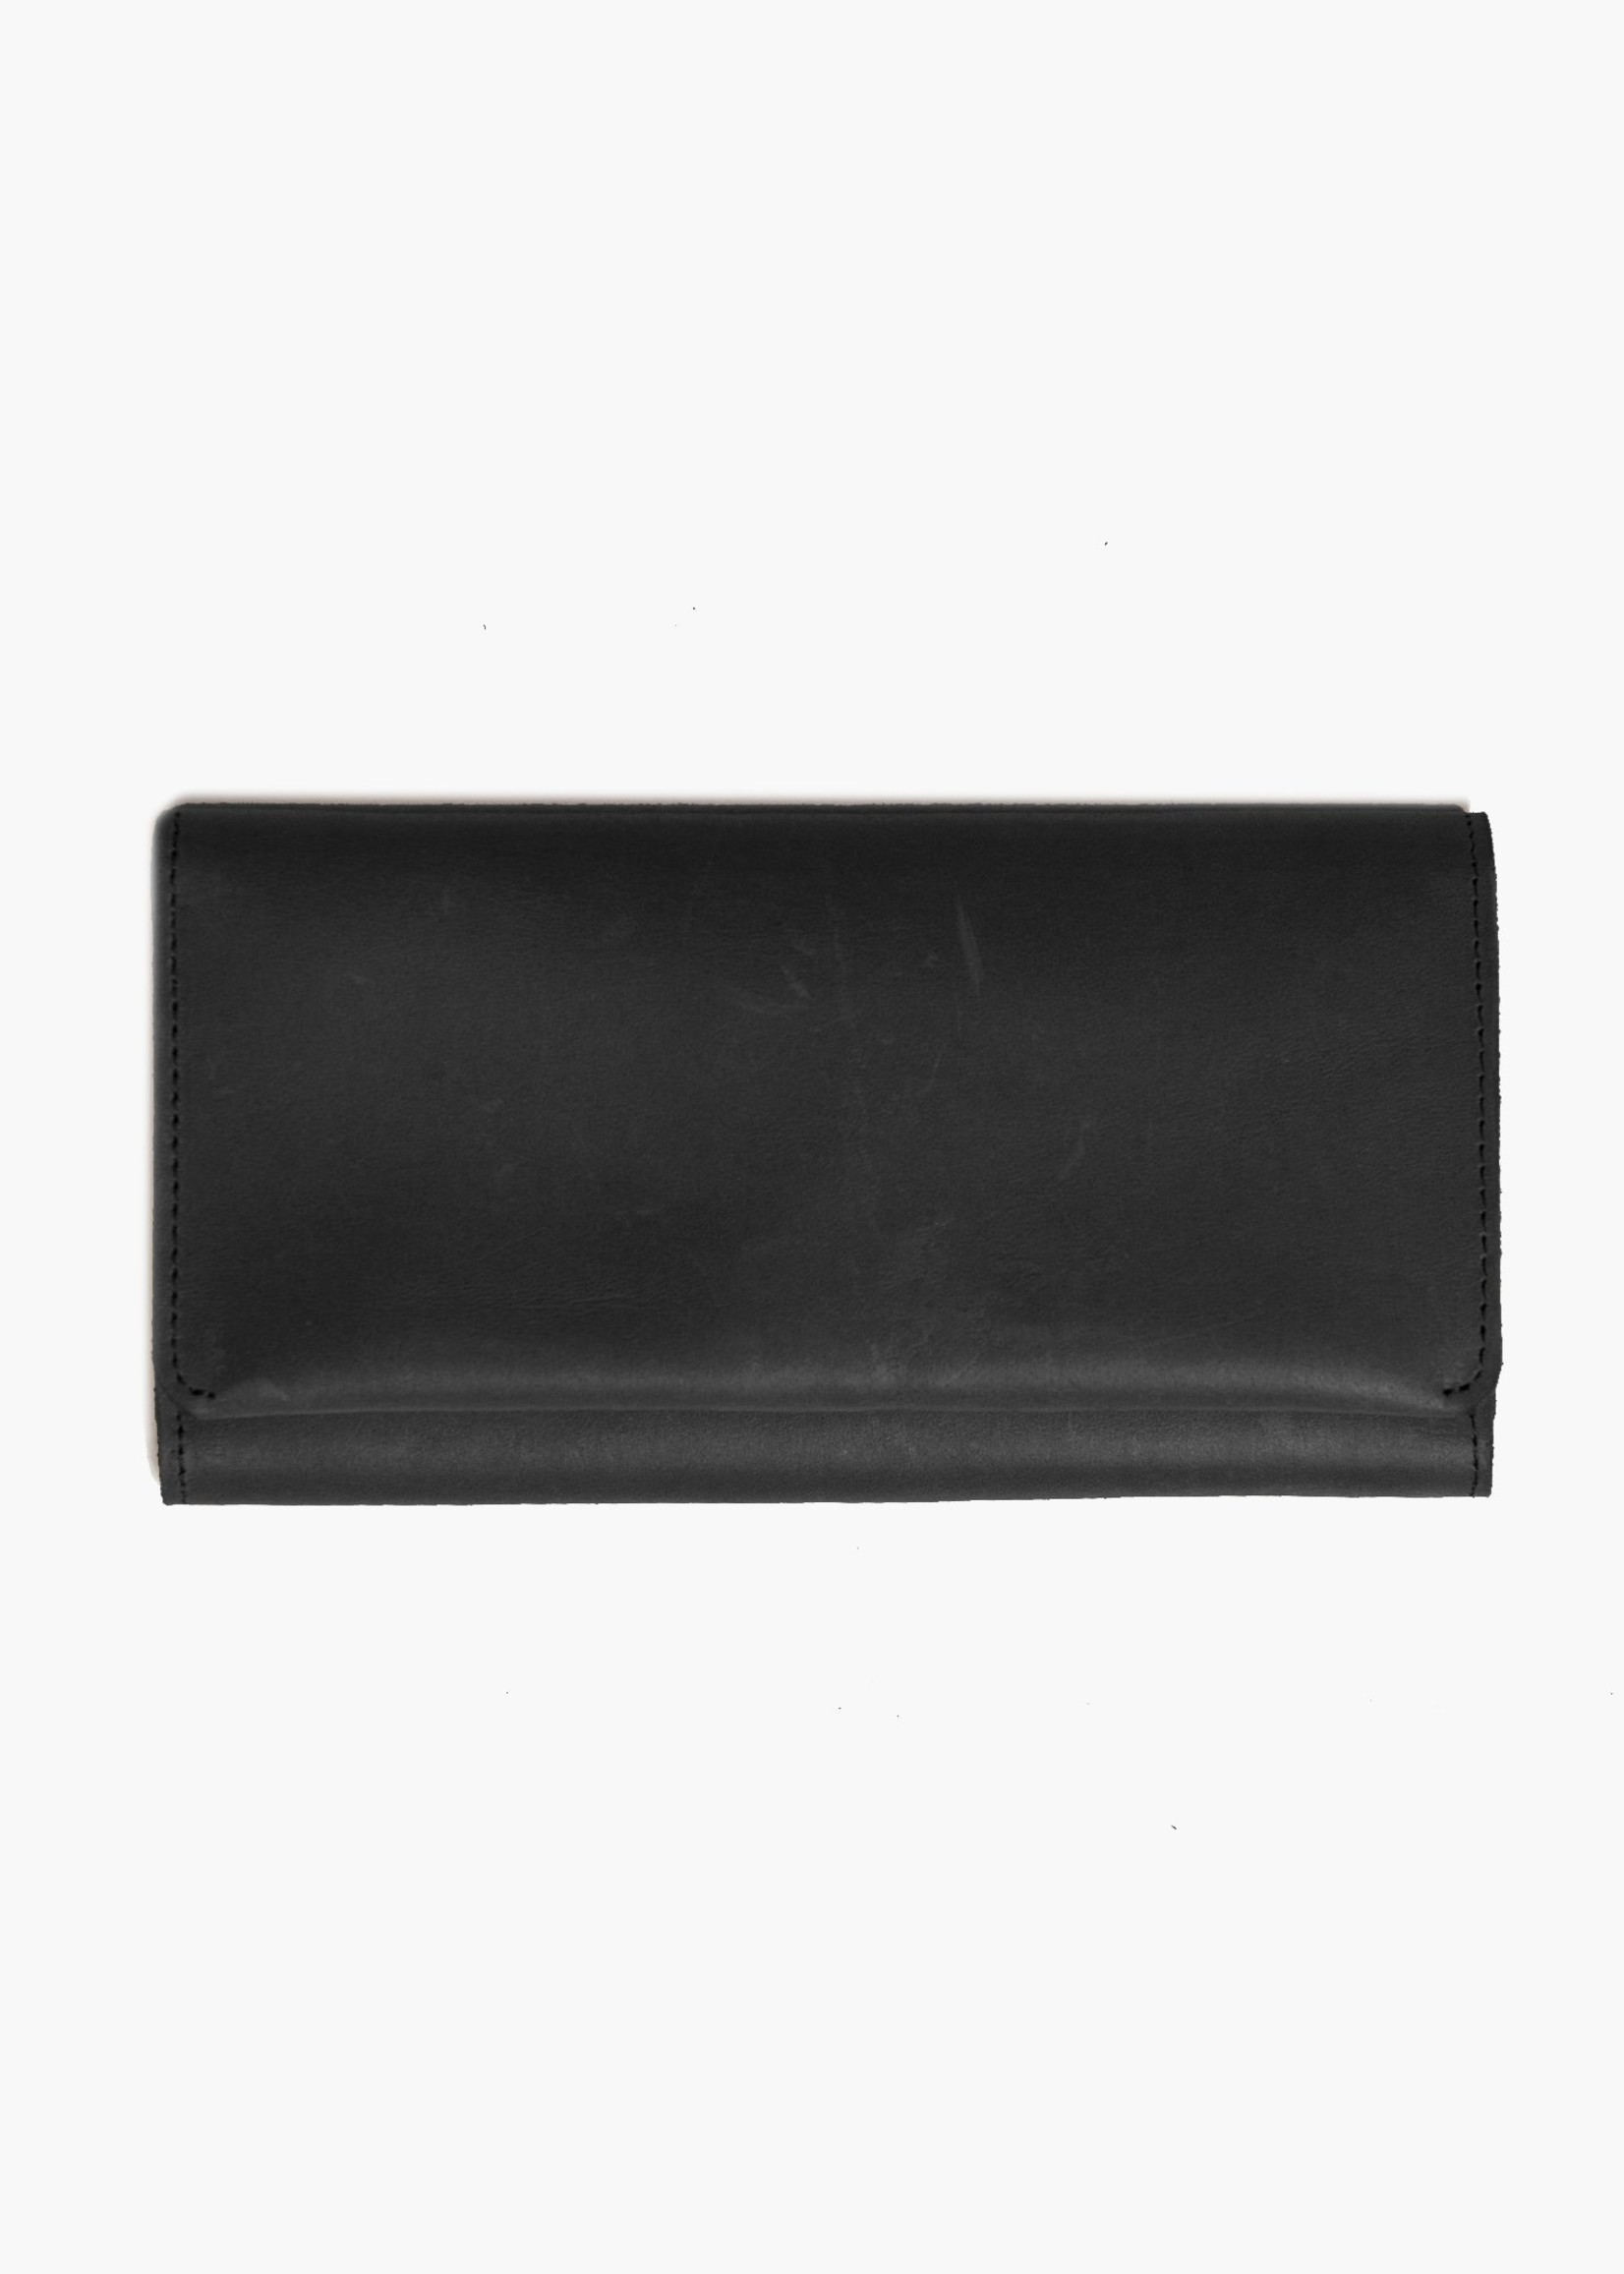 Able Leather Debre Leather Wallet